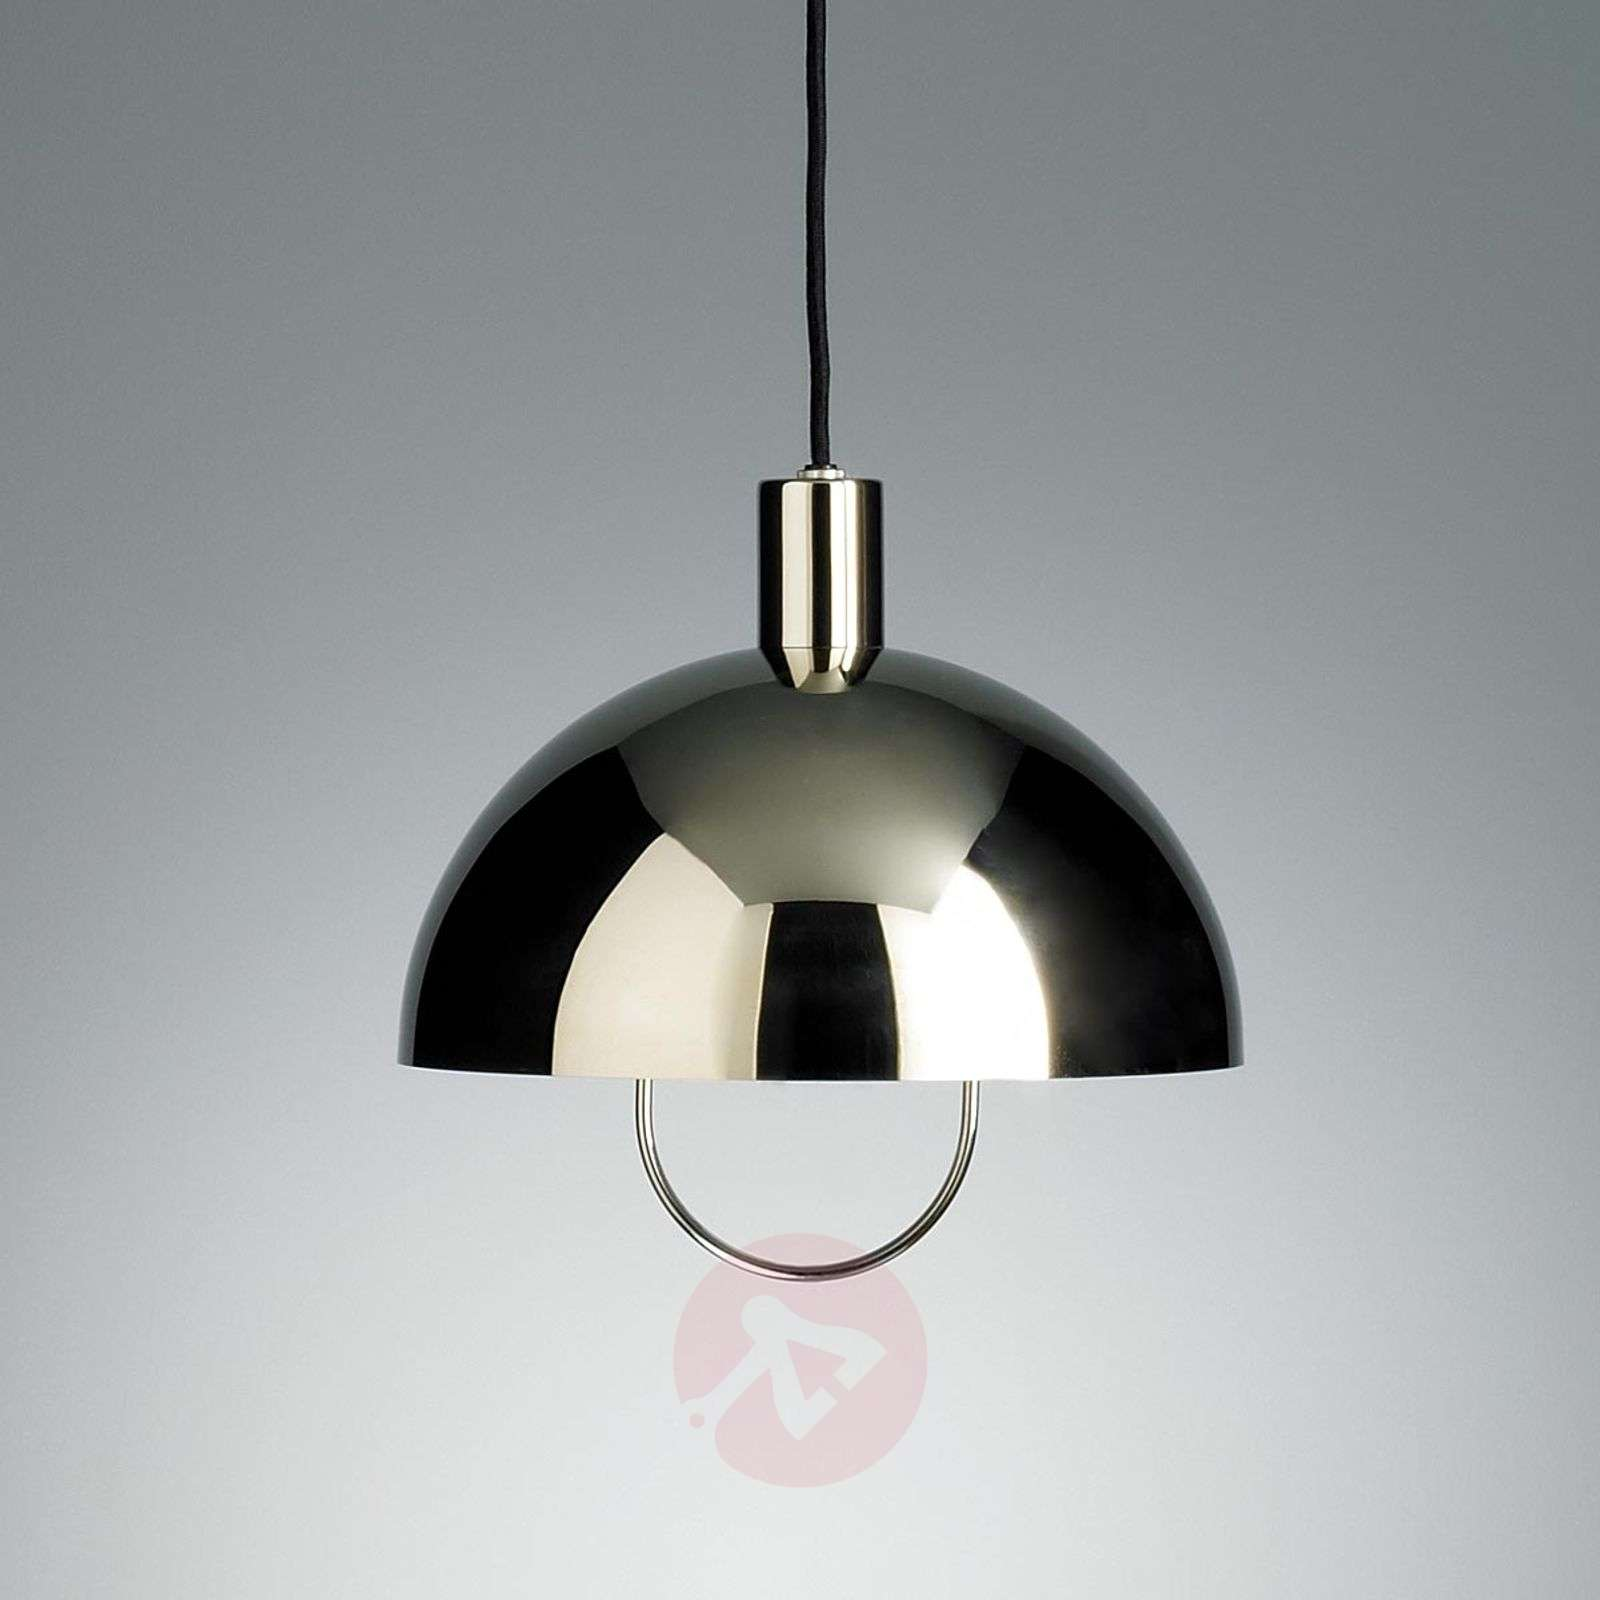 Bauhaus hanging light from 1925-9030125X-01